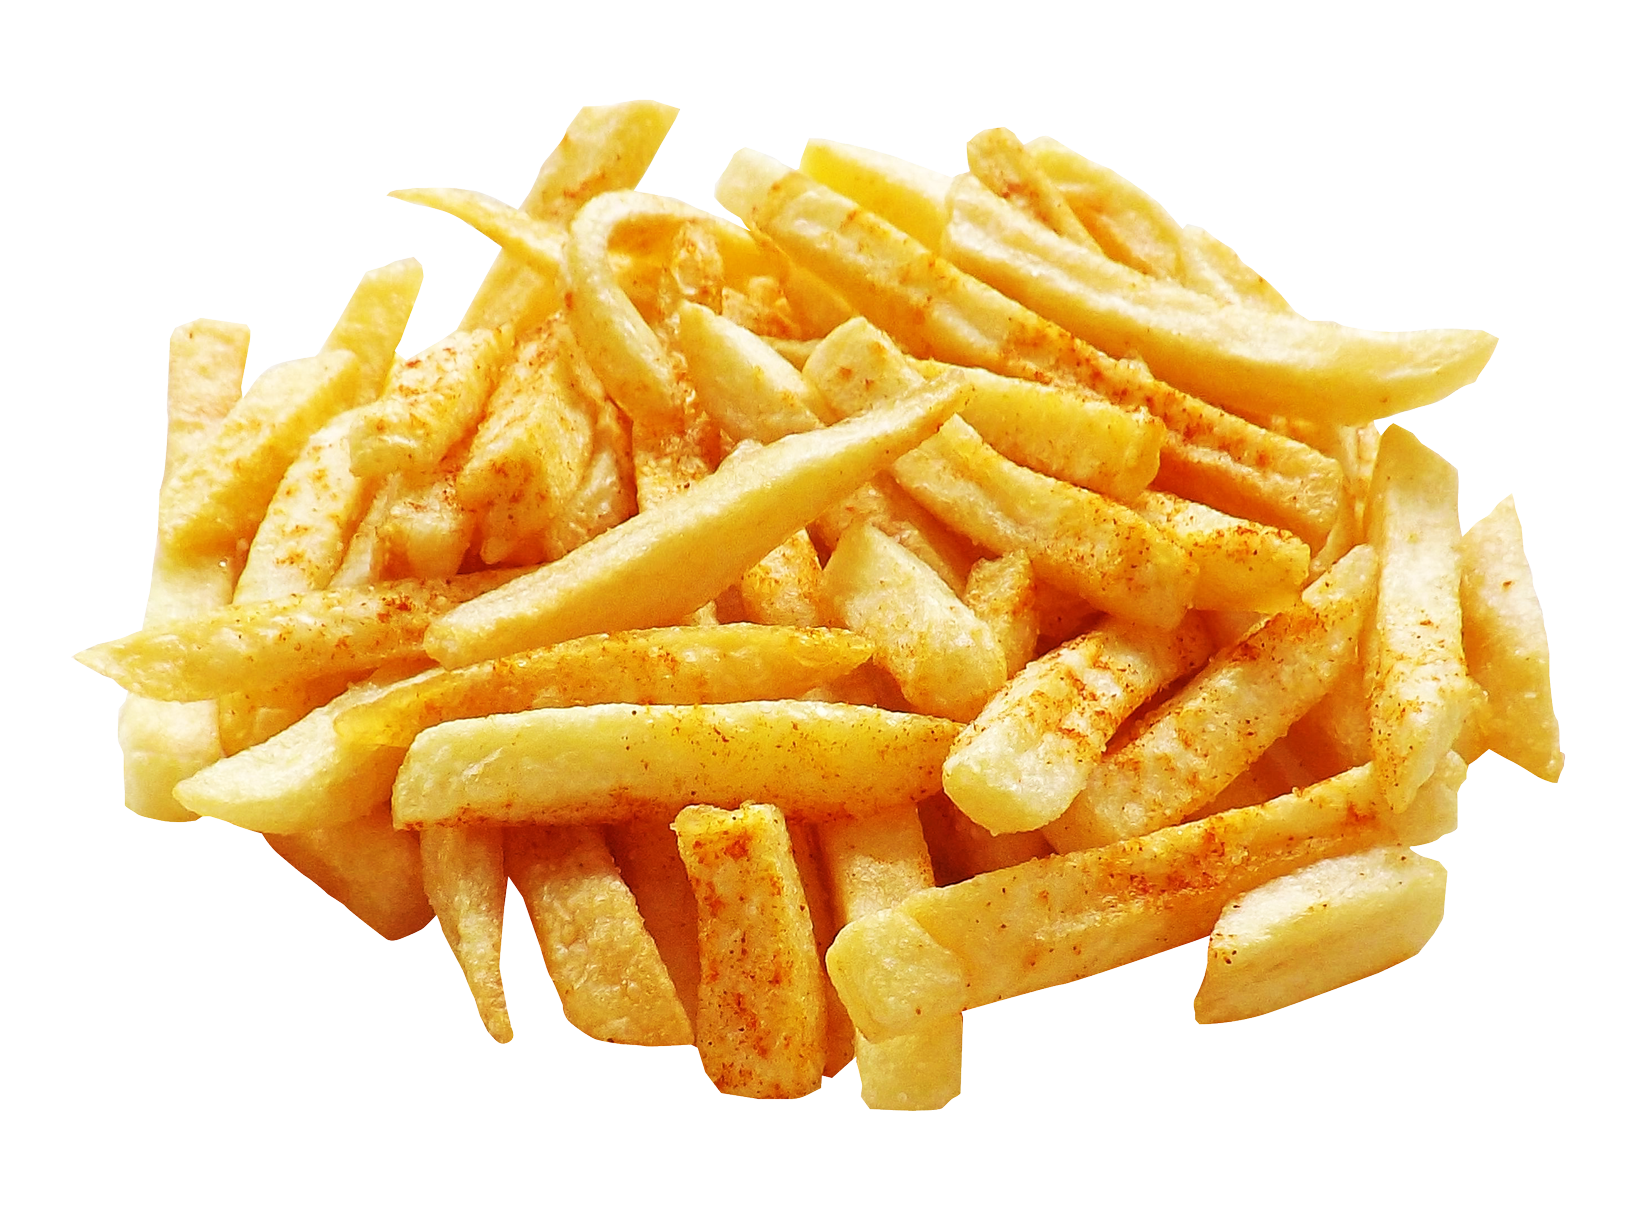 Transparent Fries Related Keywords & Suggestions - Transparent Fries ...